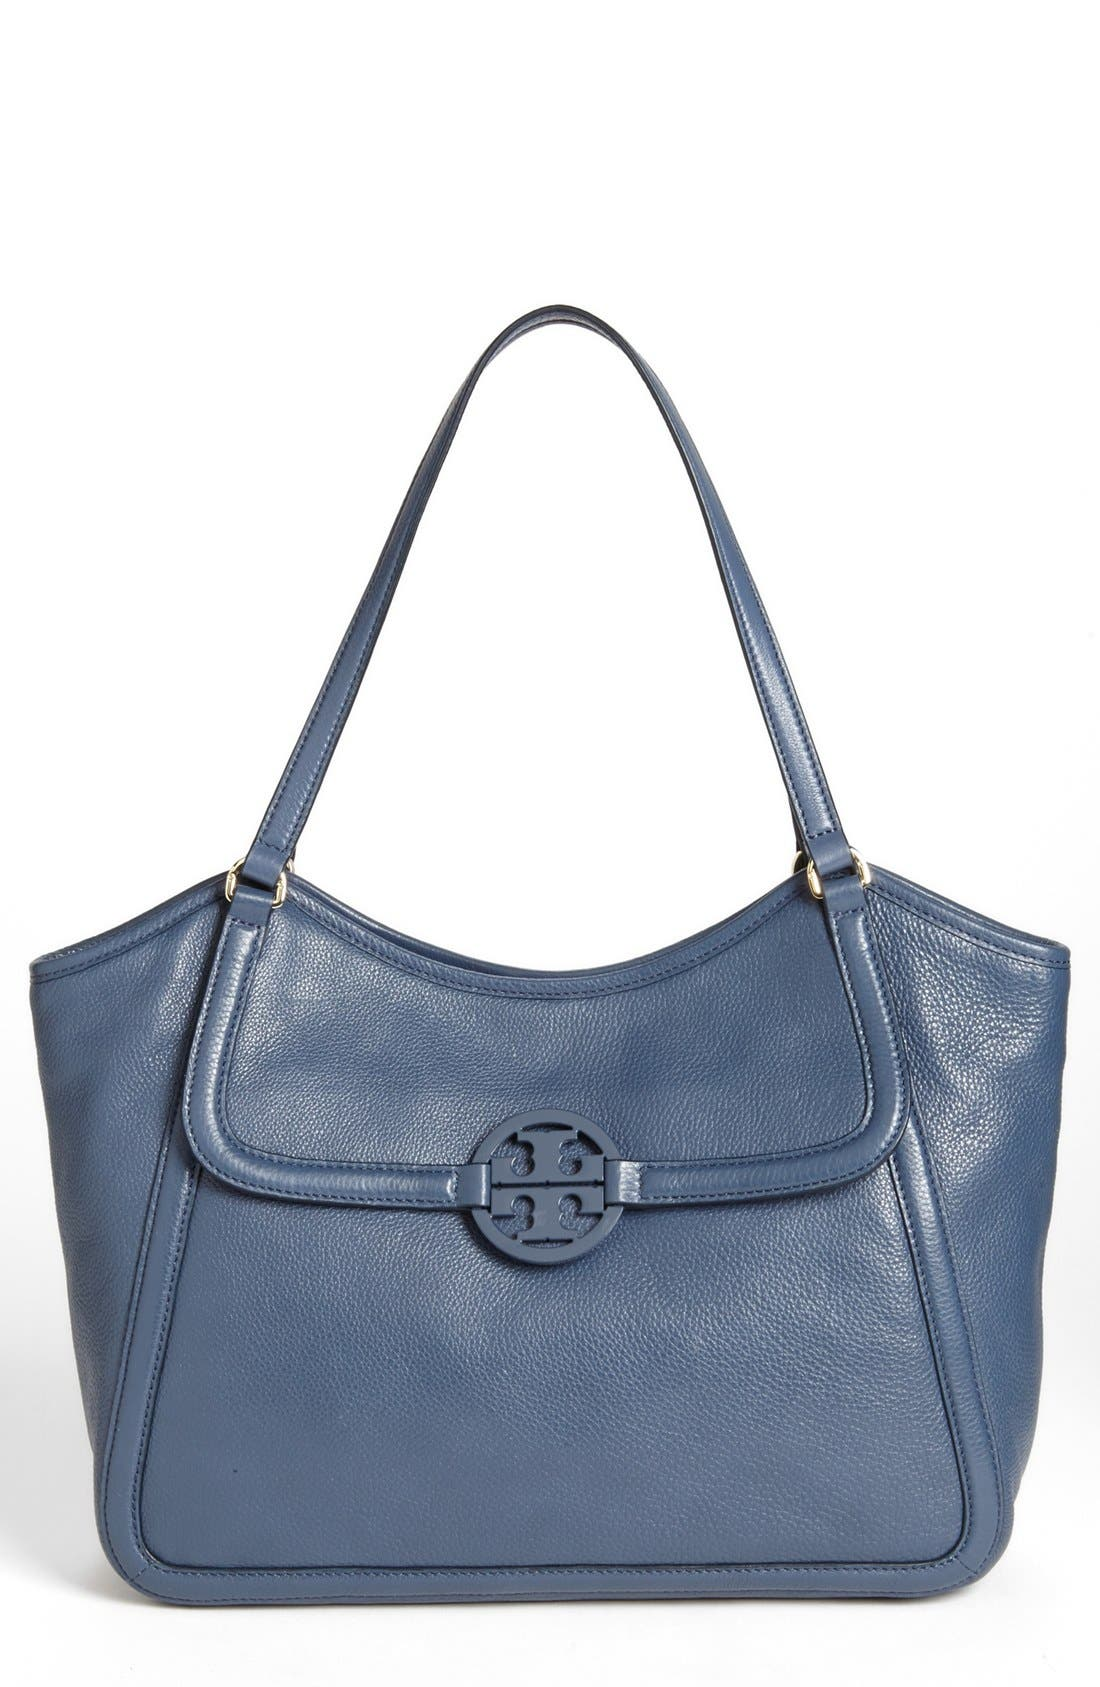 Alternate Image 1 Selected - Tory Burch 'Small Amanda' Leather Tote